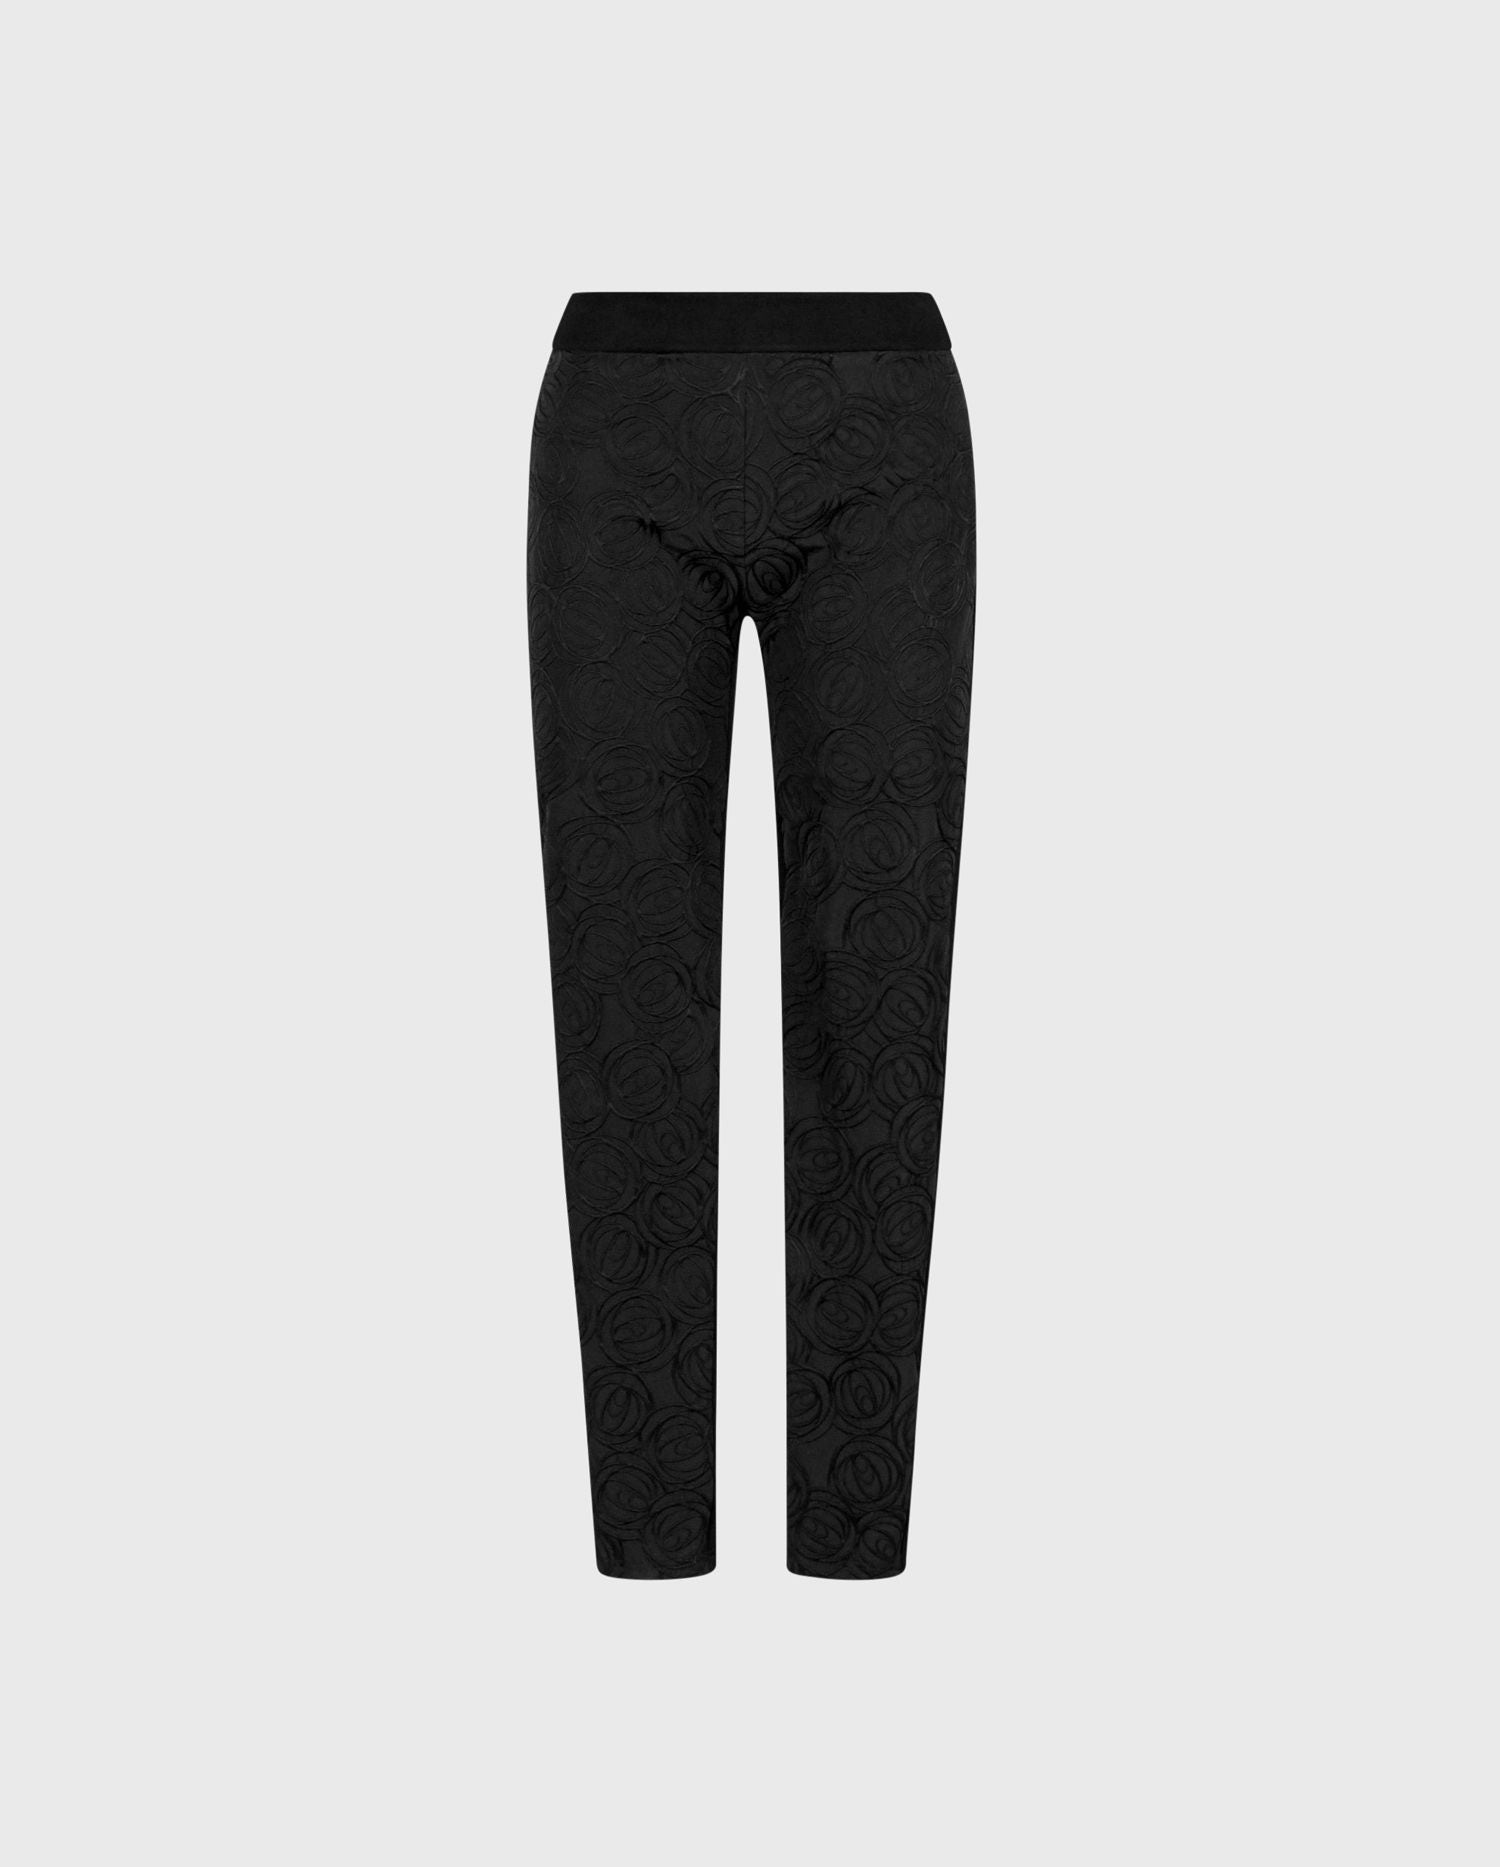 Comfort and luxury coincide with the AIKO black floral and milano knit leggings